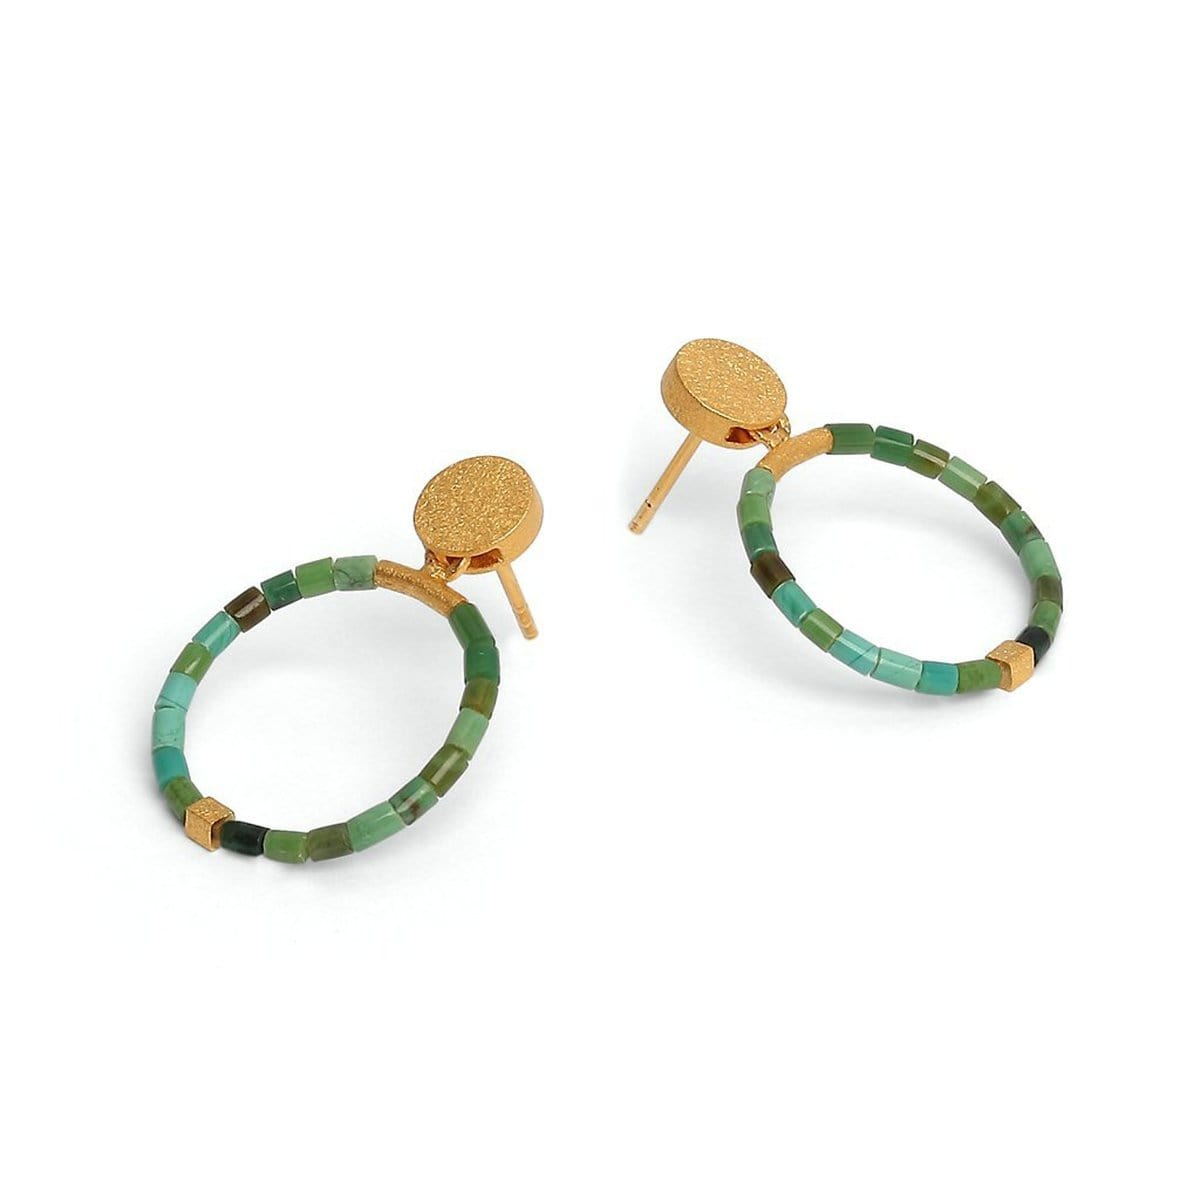 Circolo Green Turquoise Earrings - 15586356-Bernd Wolf-Renee Taylor Gallery